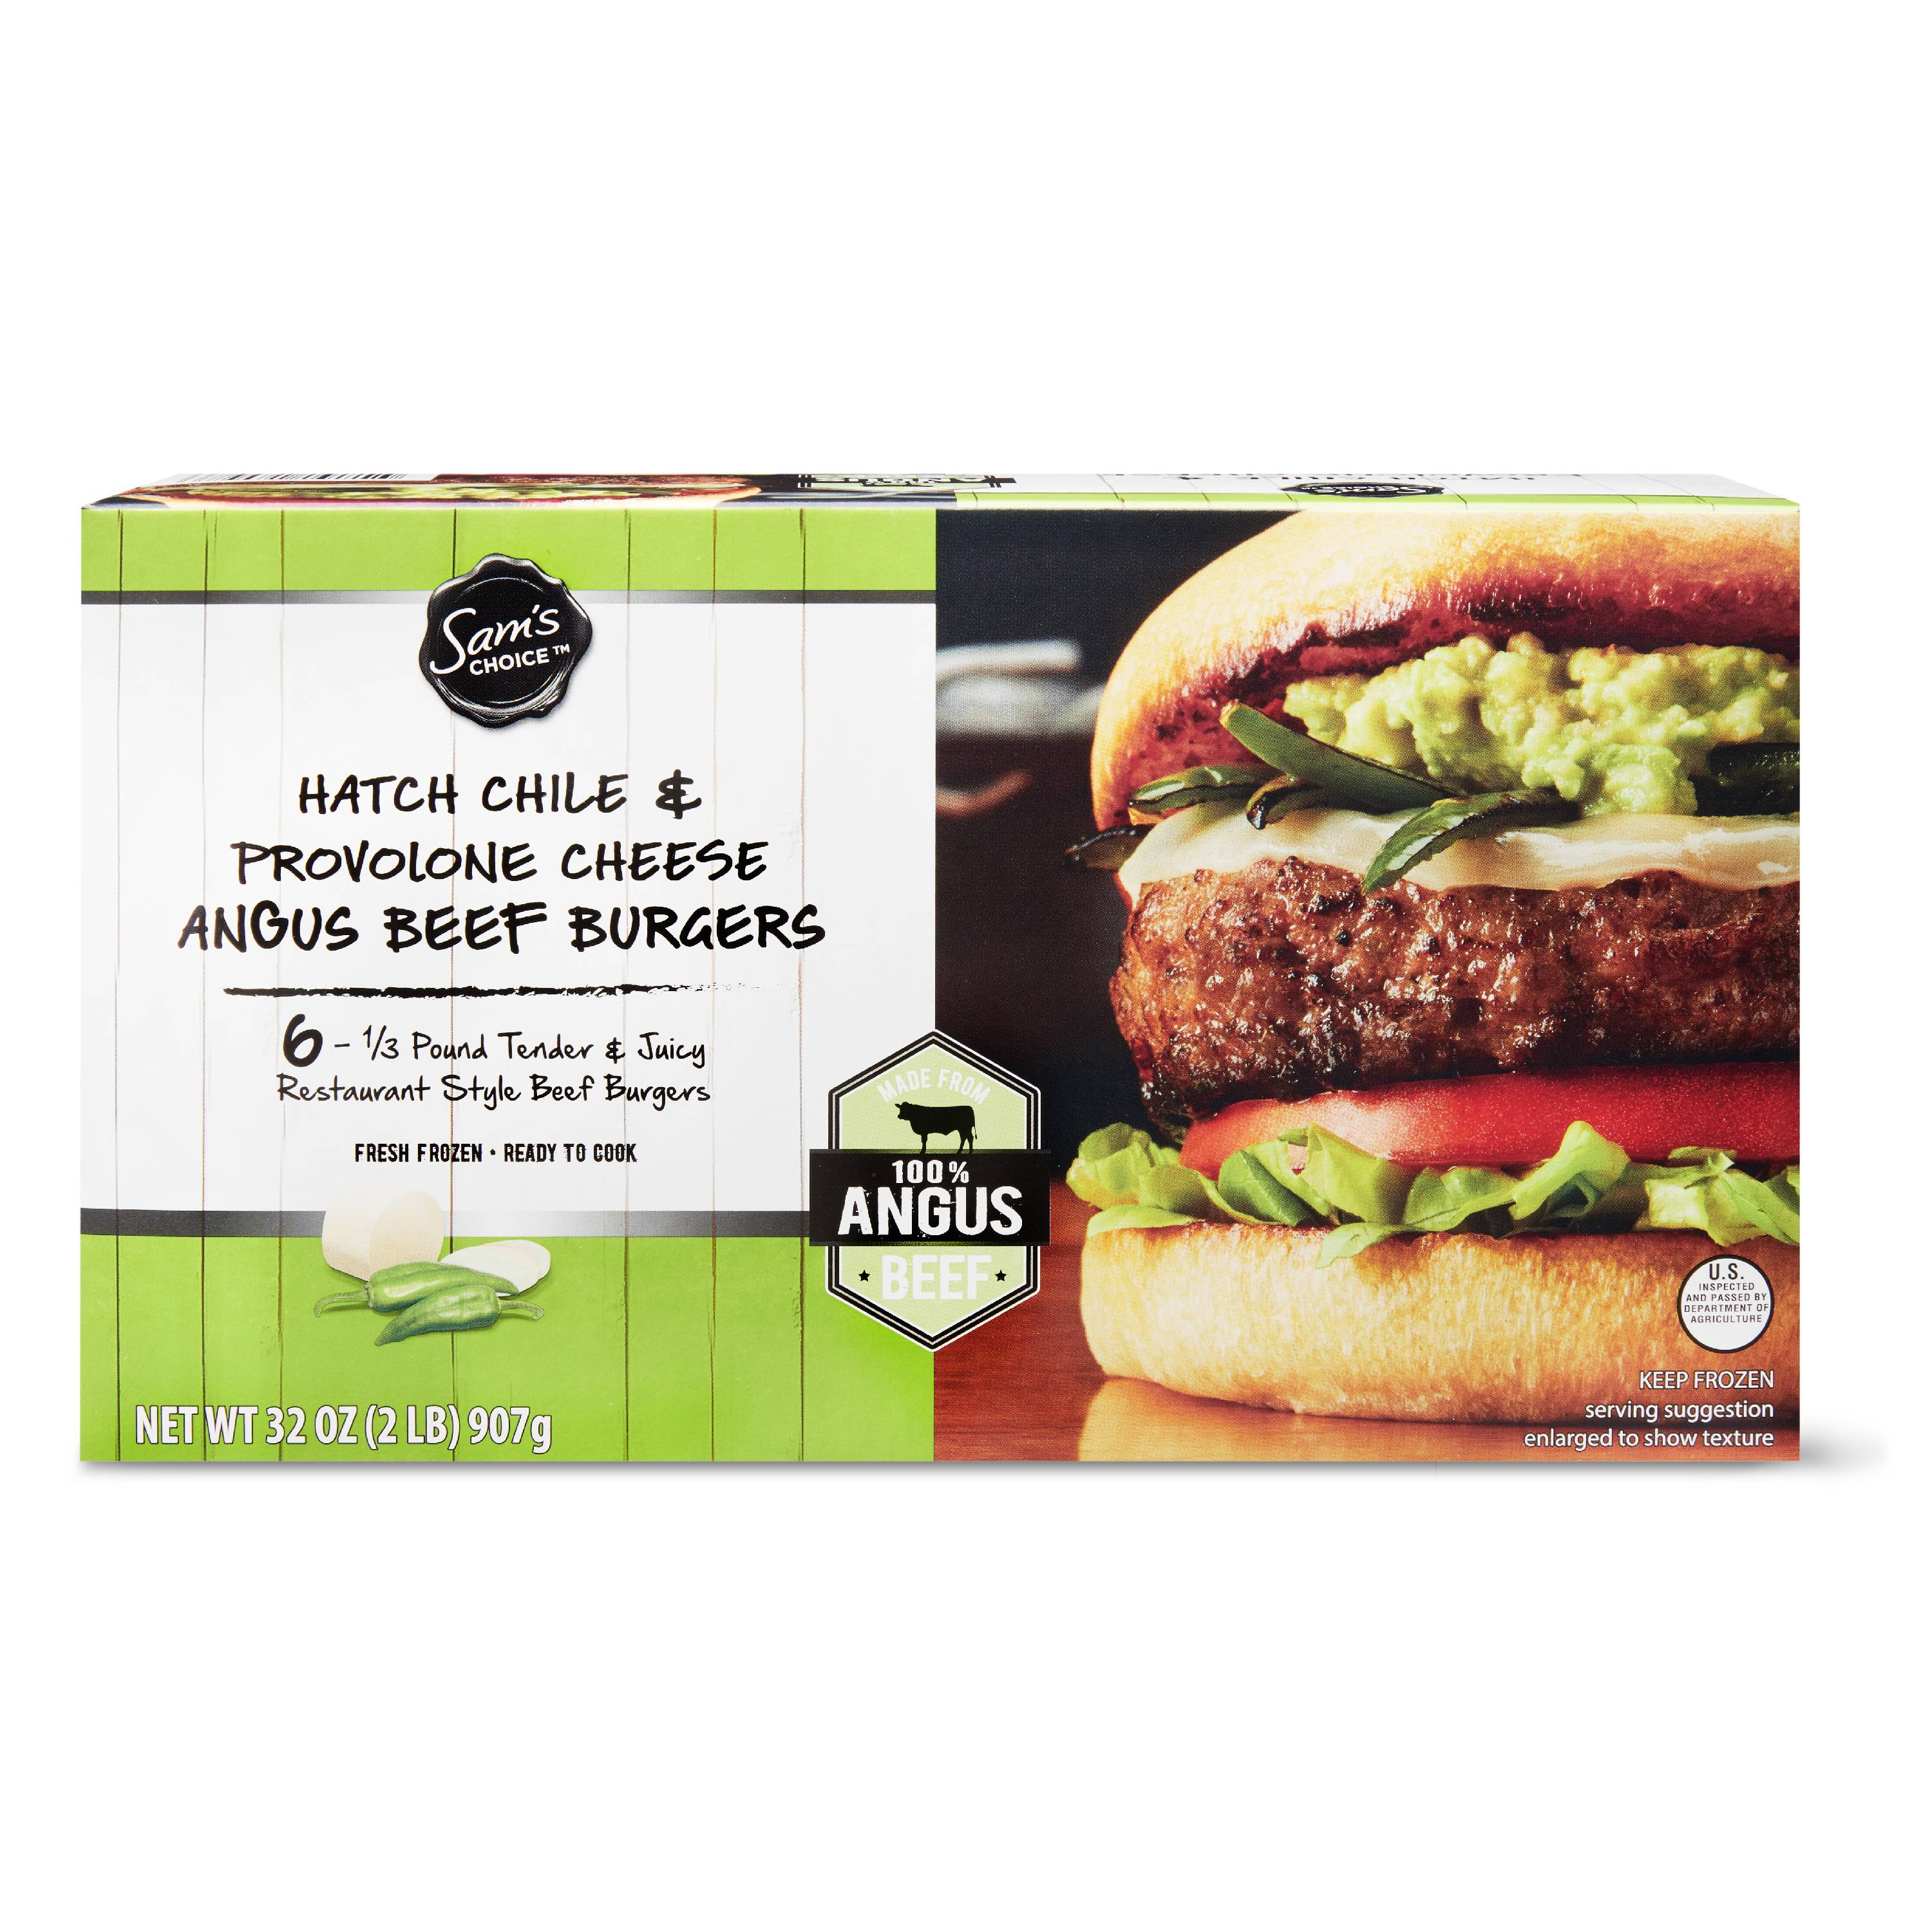 Sam's Choice Hatch Chile & Provolone Cheese Angus Beef Burgers, 32 oz, 6 Count